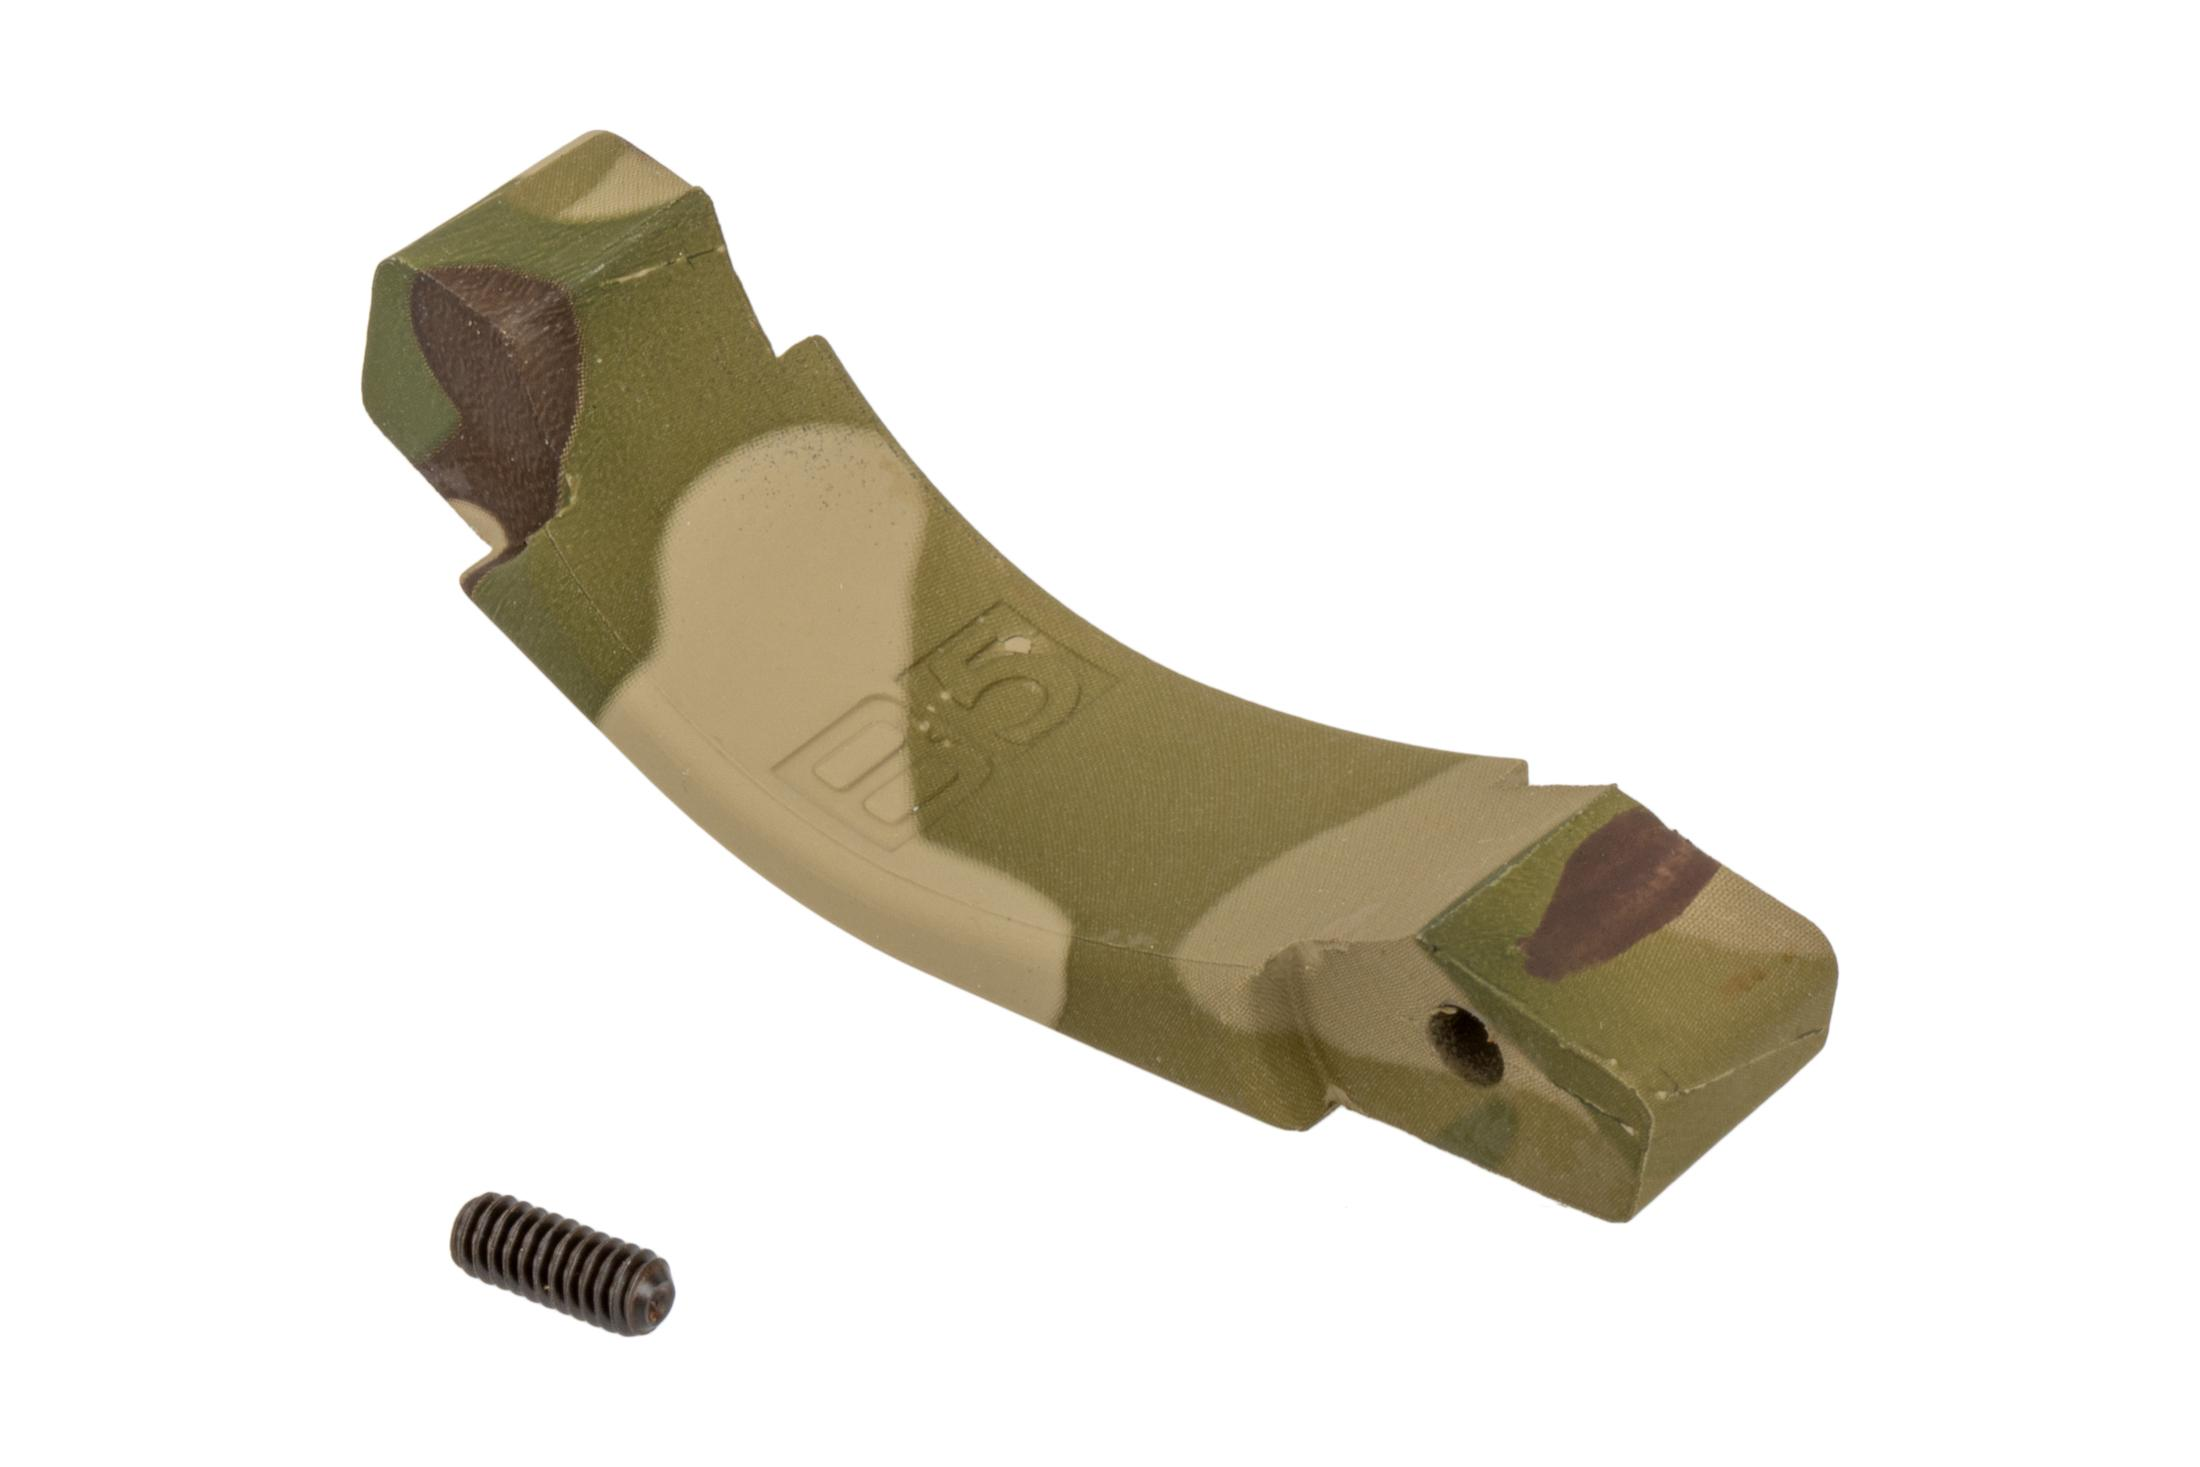 The B5 System Multicam Polymer Trigger Guard is compatible with AR15 and AR10 lowers